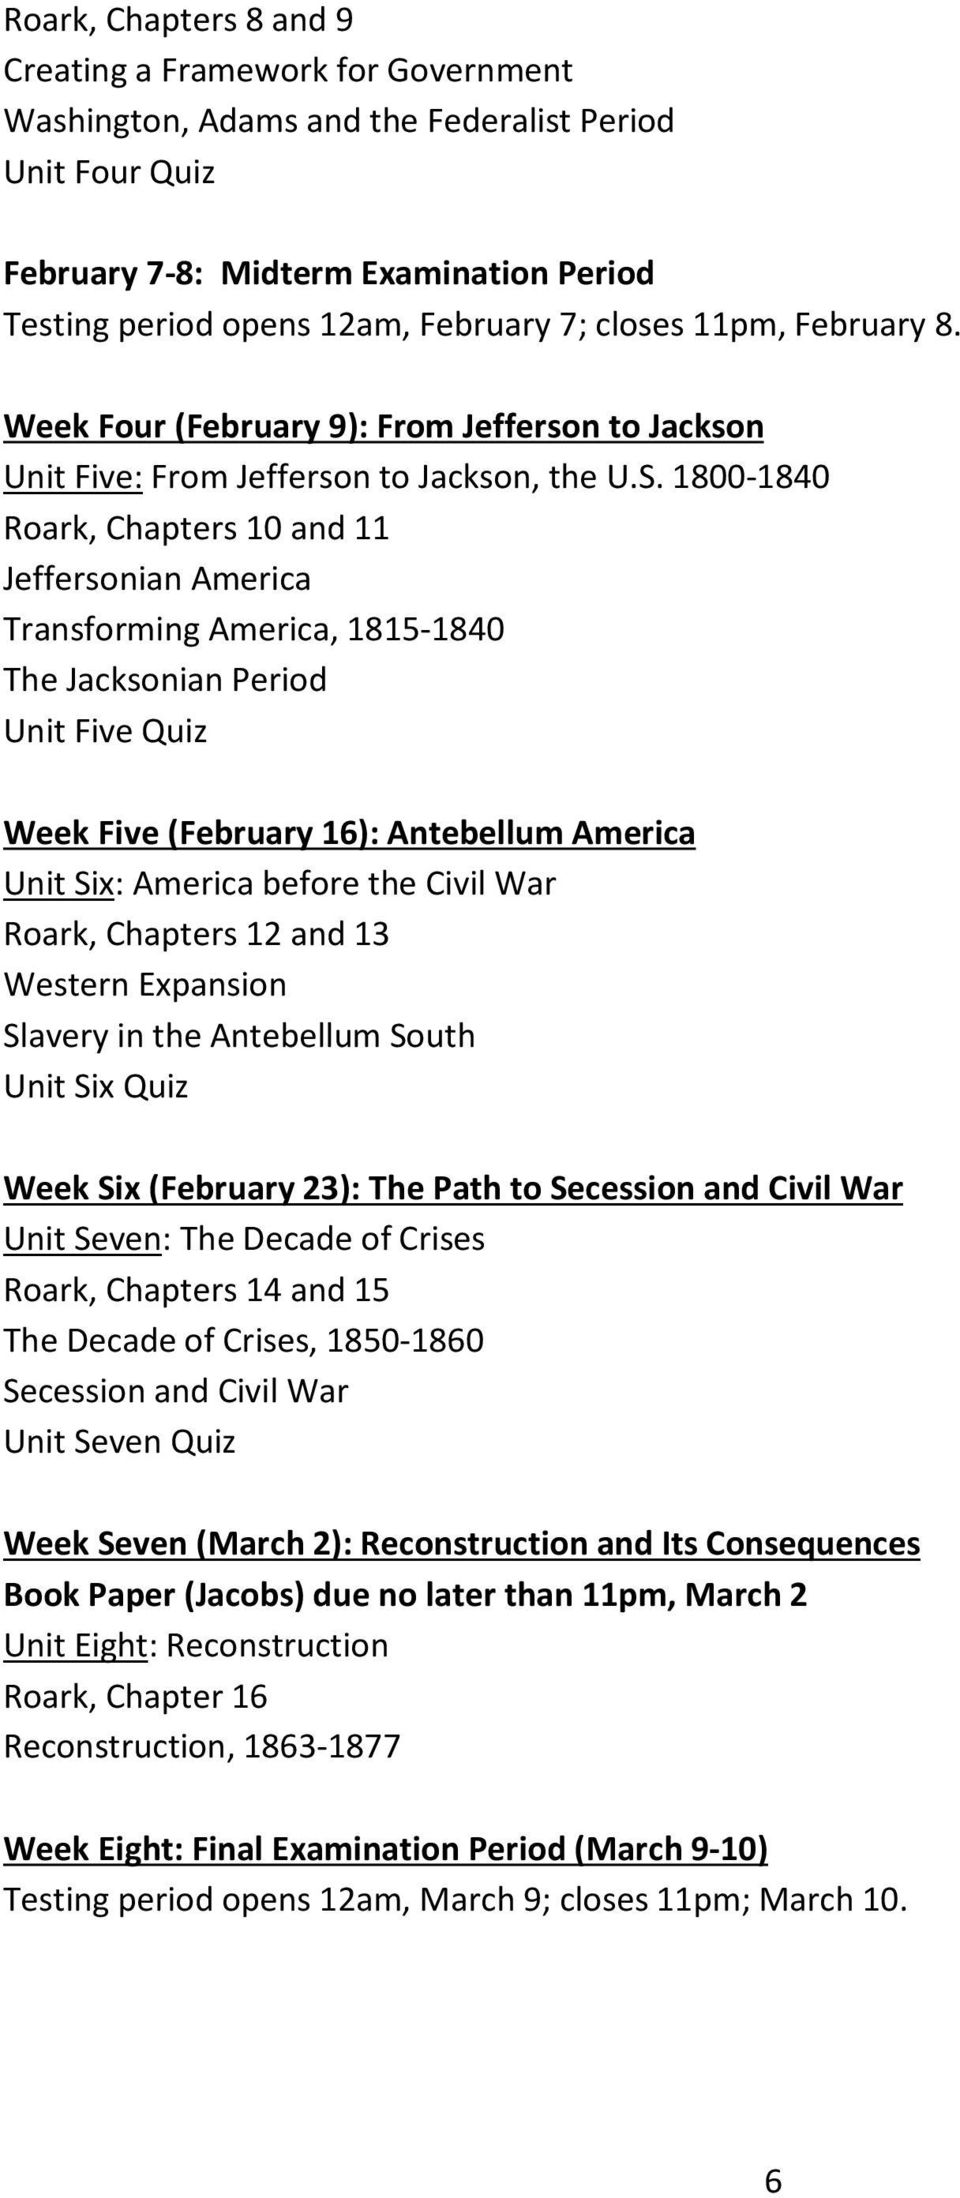 1800-1840 Roark, Chapters 10 and 11 Jeffersonian America Transforming America, 1815-1840 The Jacksonian Period Unit Five Quiz Week Five (February 16): Antebellum America Unit Six: America before the